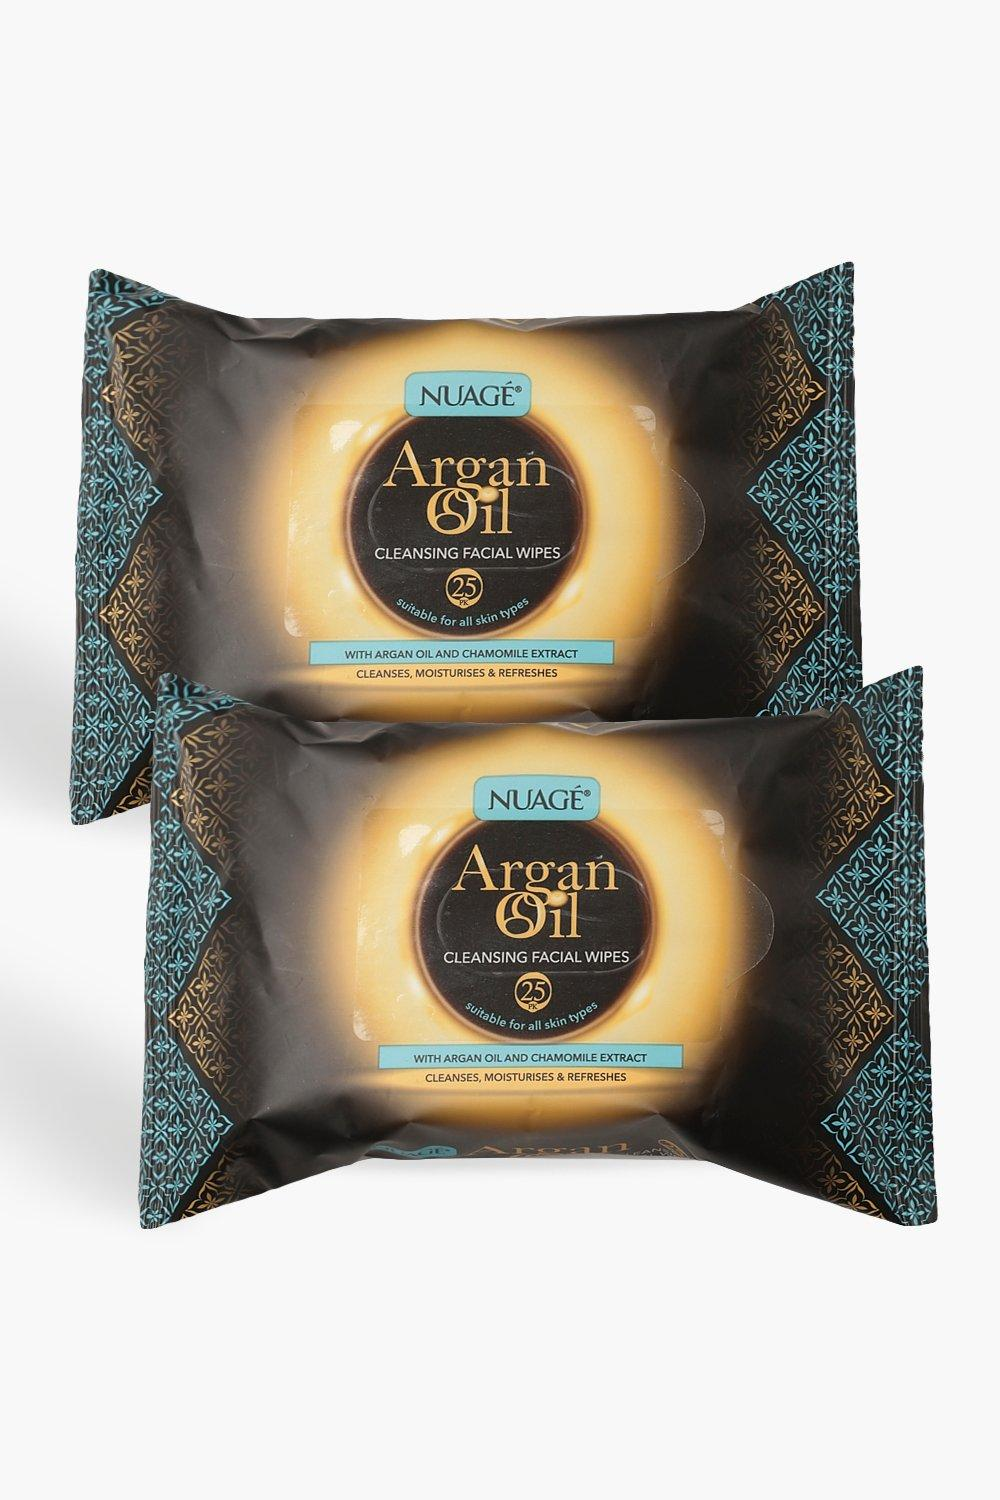 Nuage Argan Oil Cleansing Wipes Twin Pack